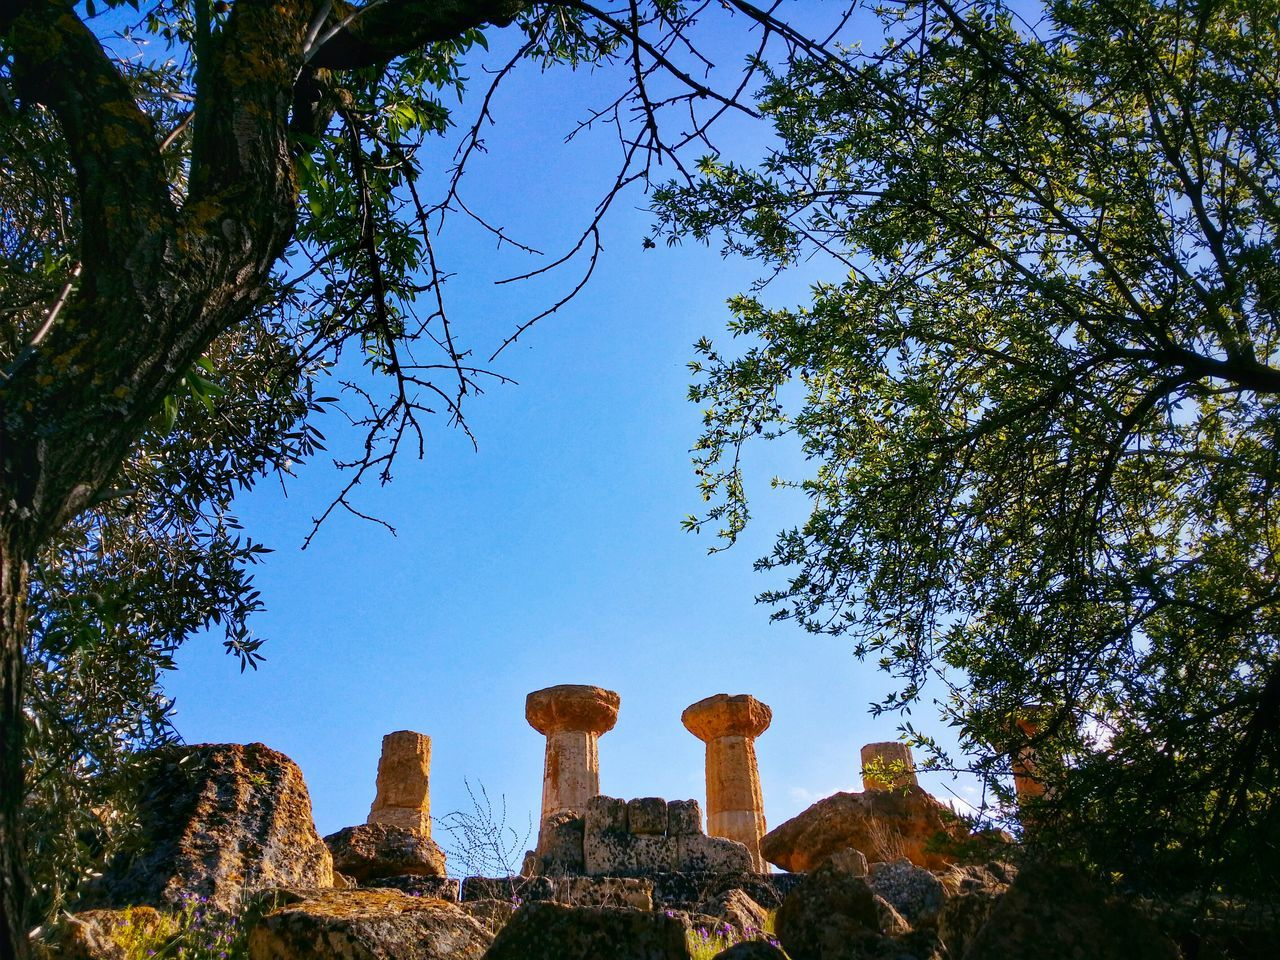 Valley Of The Temples Agrigento Sicily Italy Travel Photography Travel Voyage Traveling Mobile Photography Fine Art Architecture Greek Temples Columns Nature Tree Branches Mobile Editing Showcase April